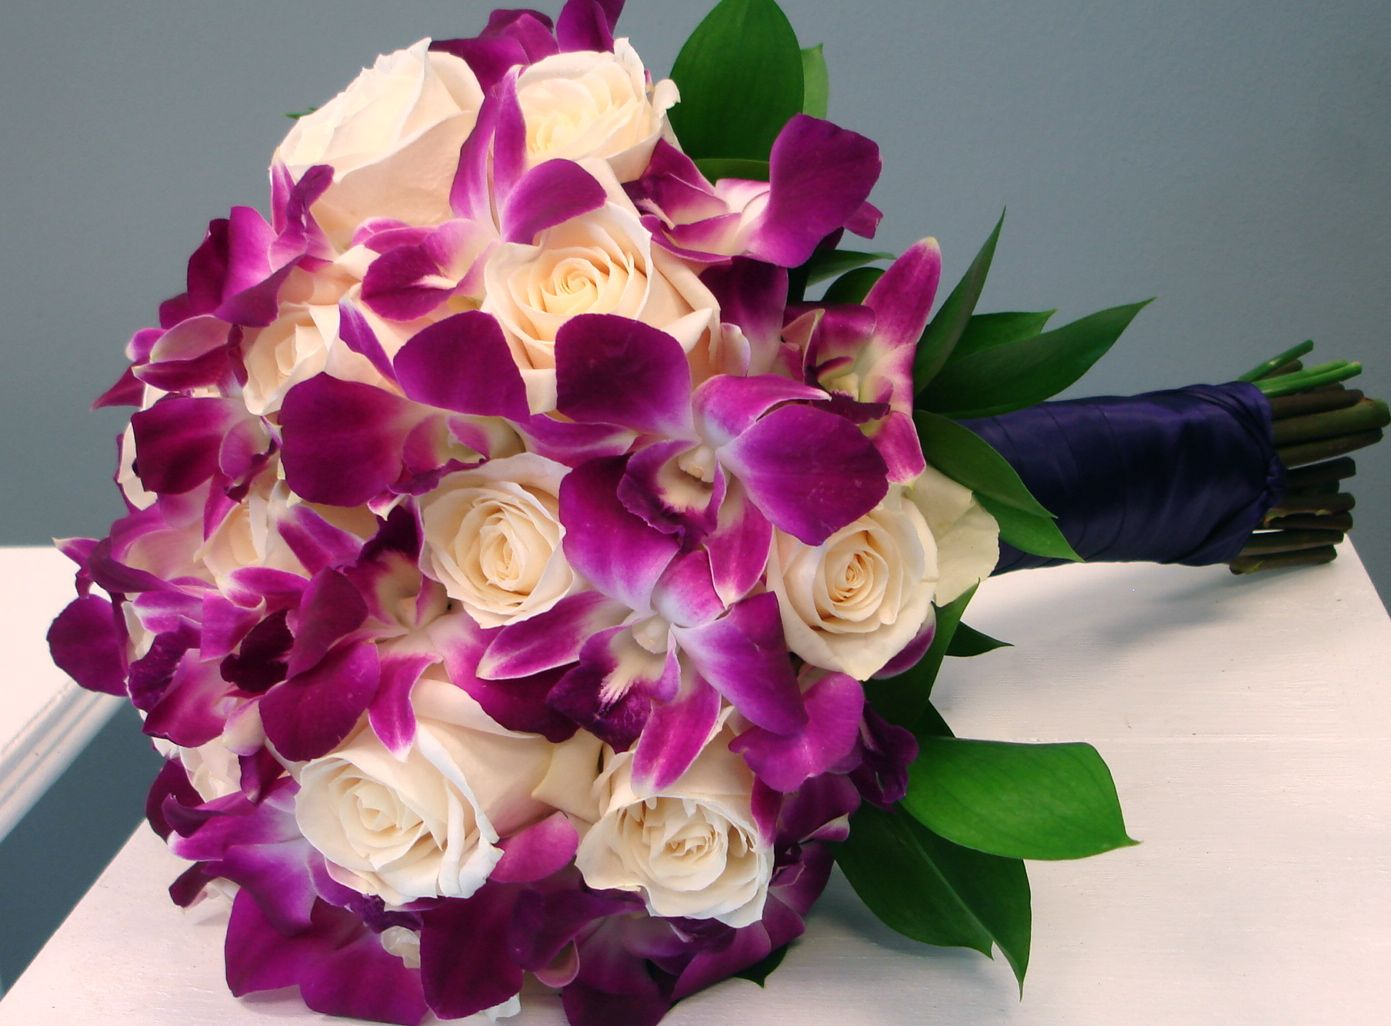 Roses and Orchids Bridal Bouquet - Flowers of the Field Las Vegas